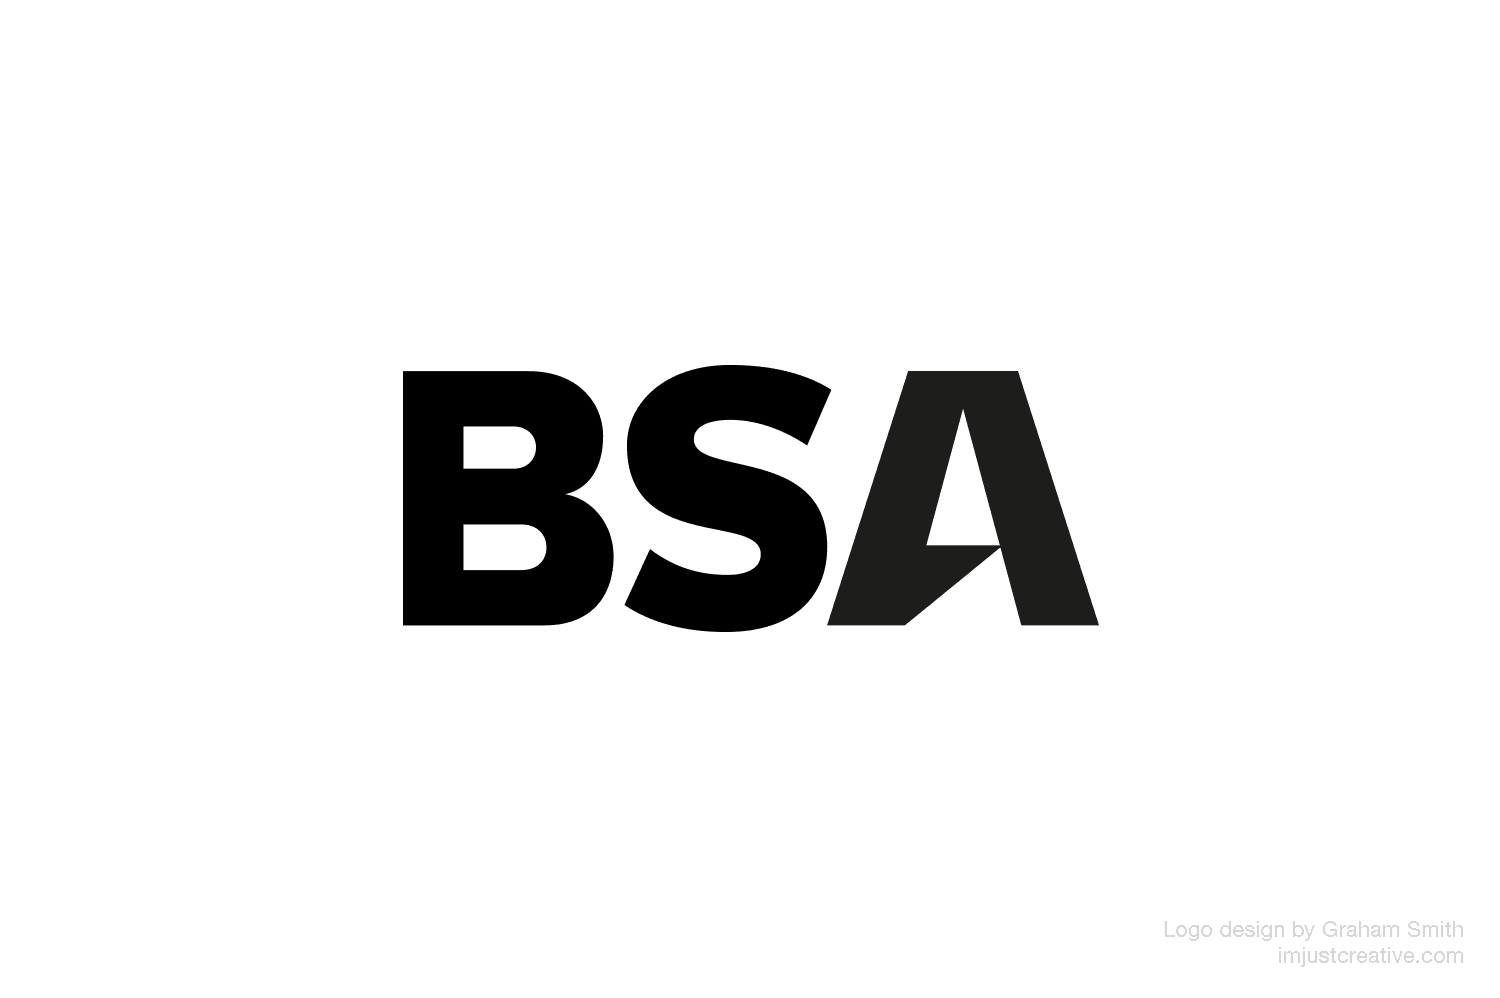 BSA logo designed by Graham Smith